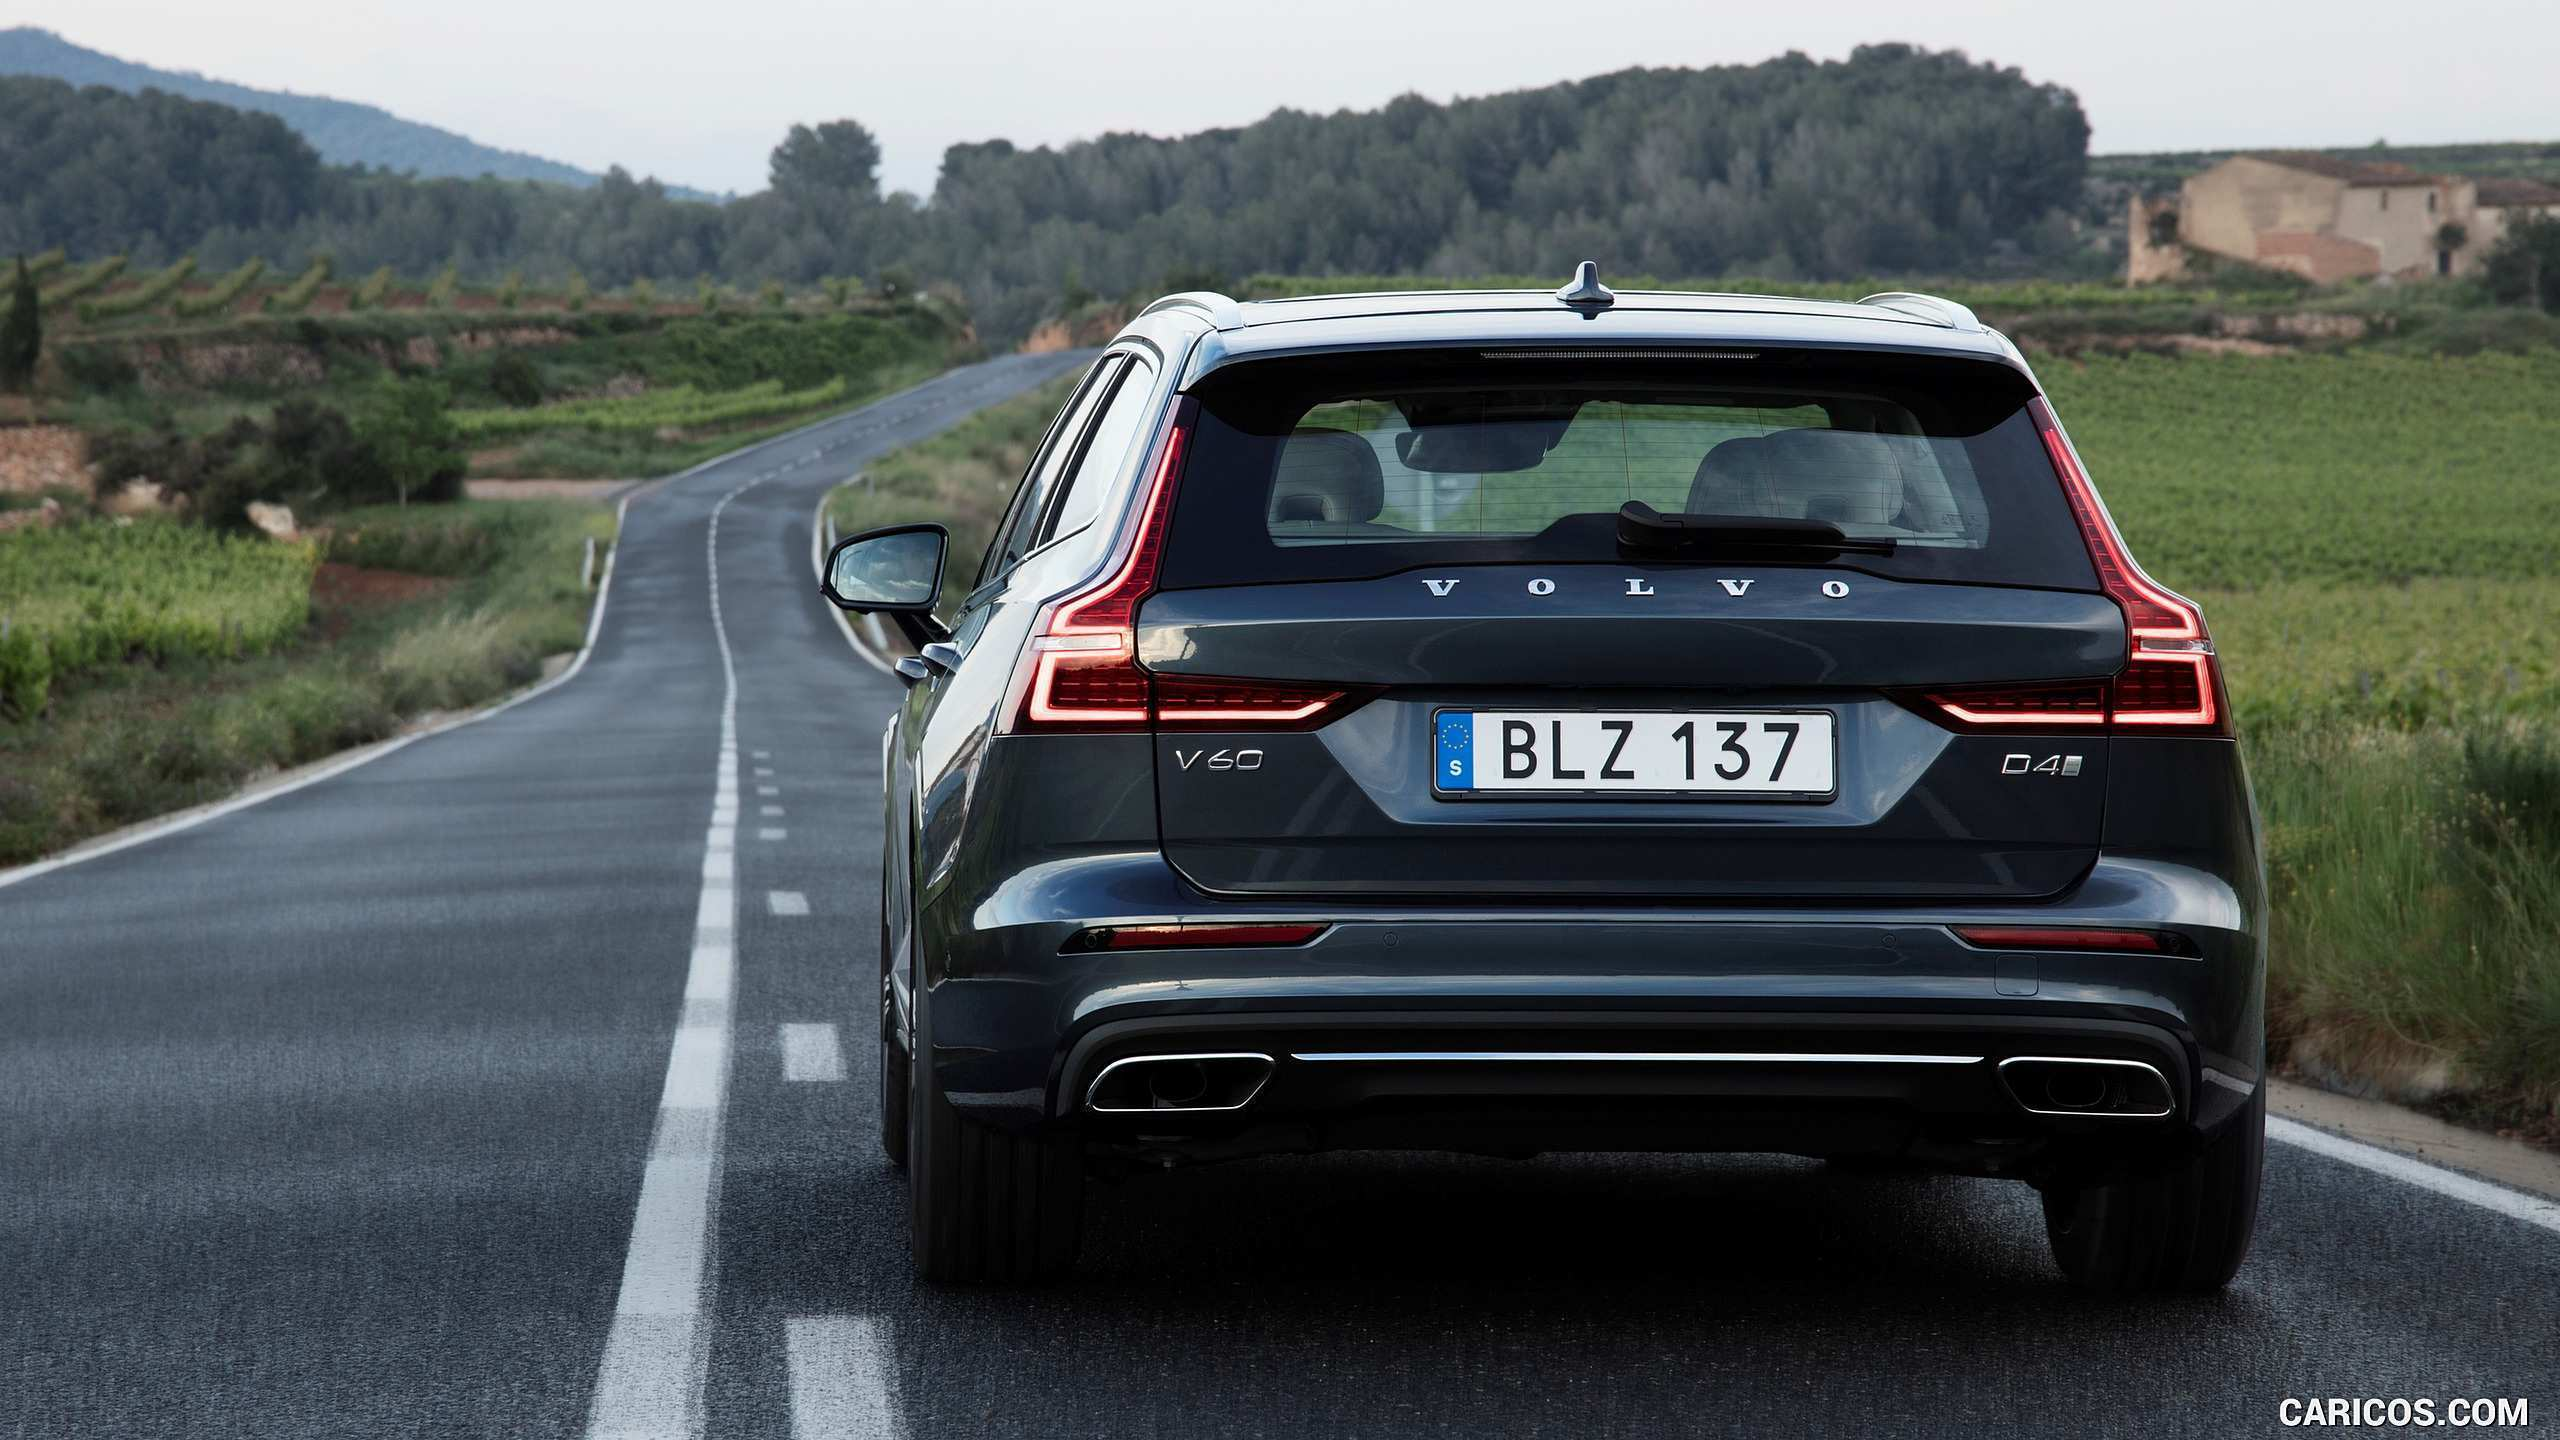 62 All New 2019 Volvo V60 D4 Specs and Review by 2019 Volvo V60 D4